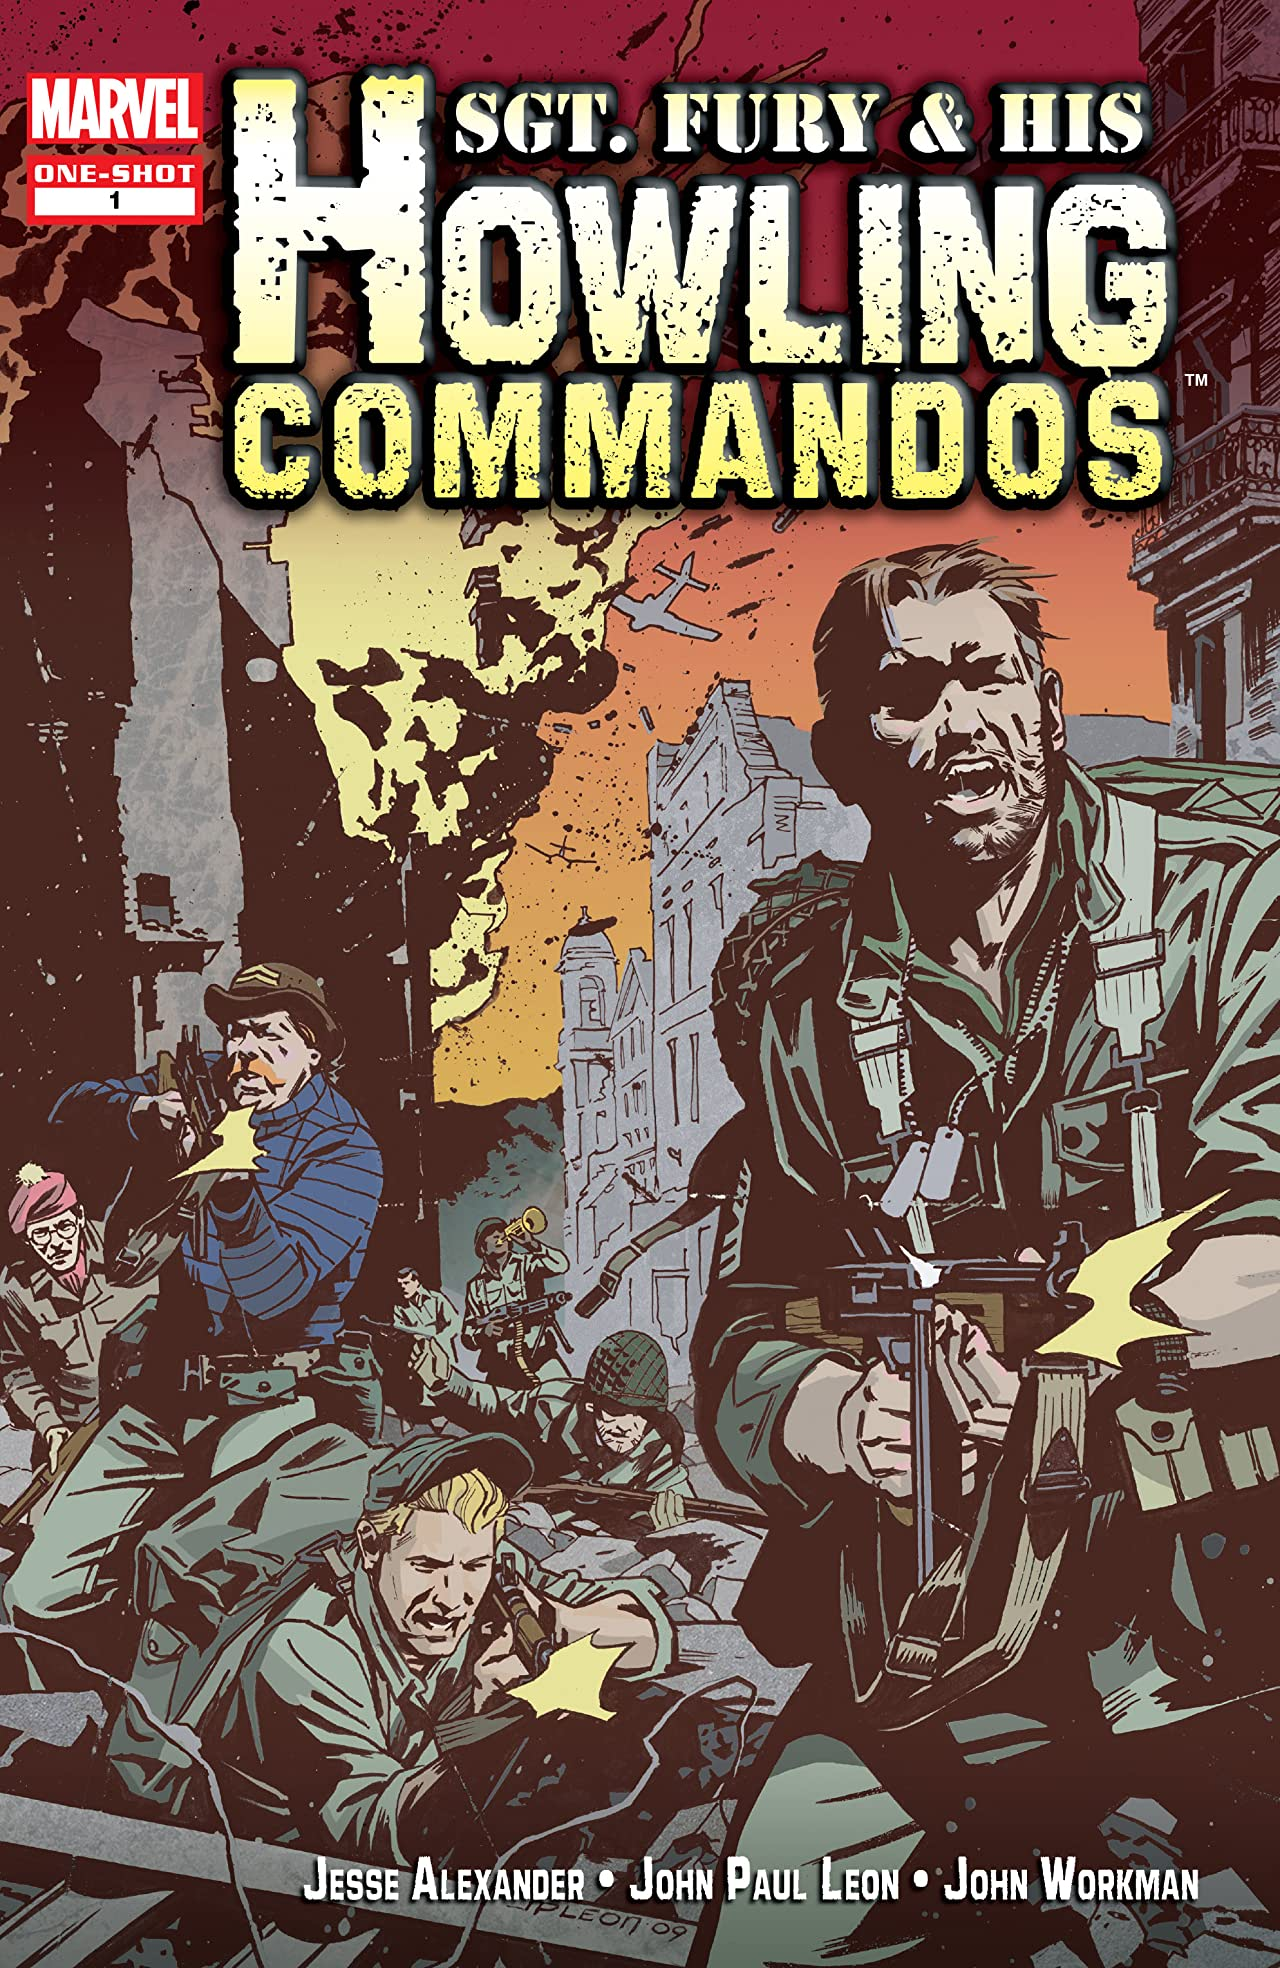 Sgt. Fury & His Howling Commandos (2009) #1